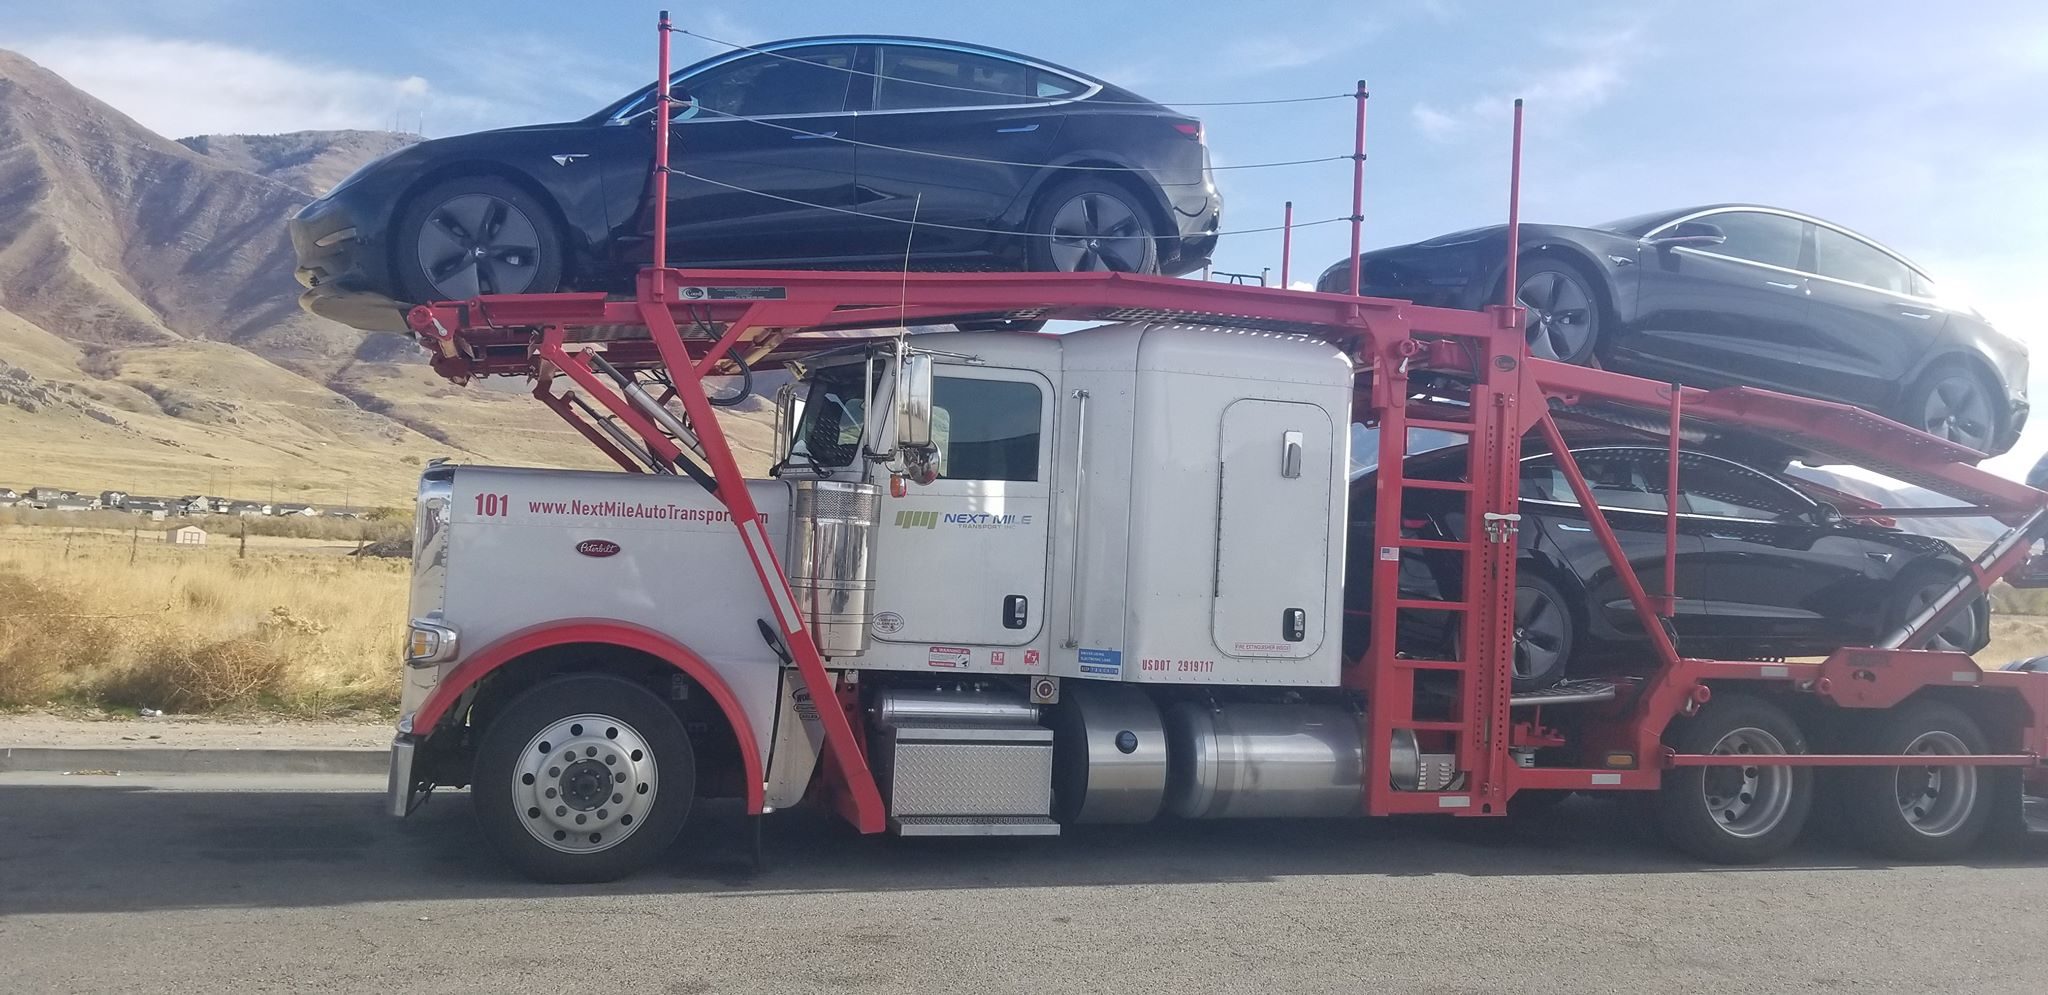 How to Ship a Car to Another State. Costs and Conditions | Next Mile Auto Transport Inc